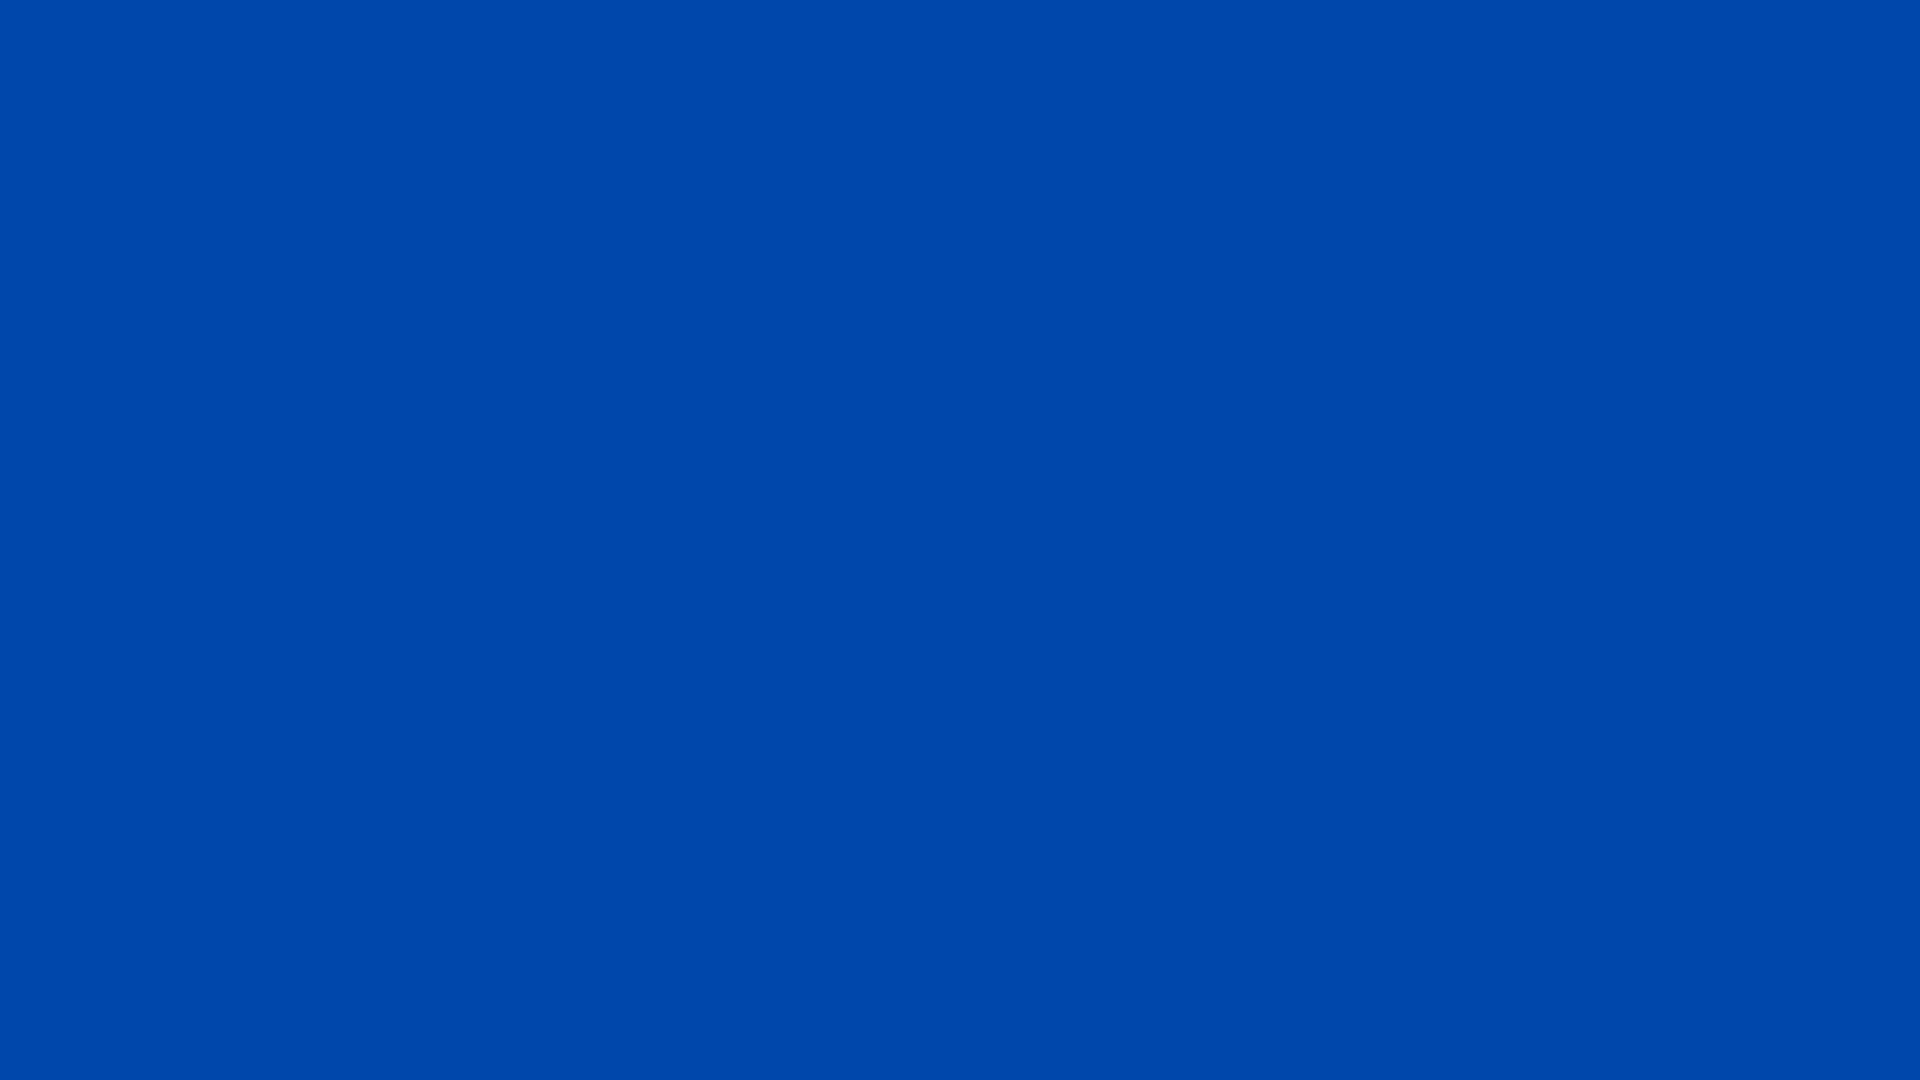 Privacy Policy >> 1920x1080 Cobalt Solid Color Background